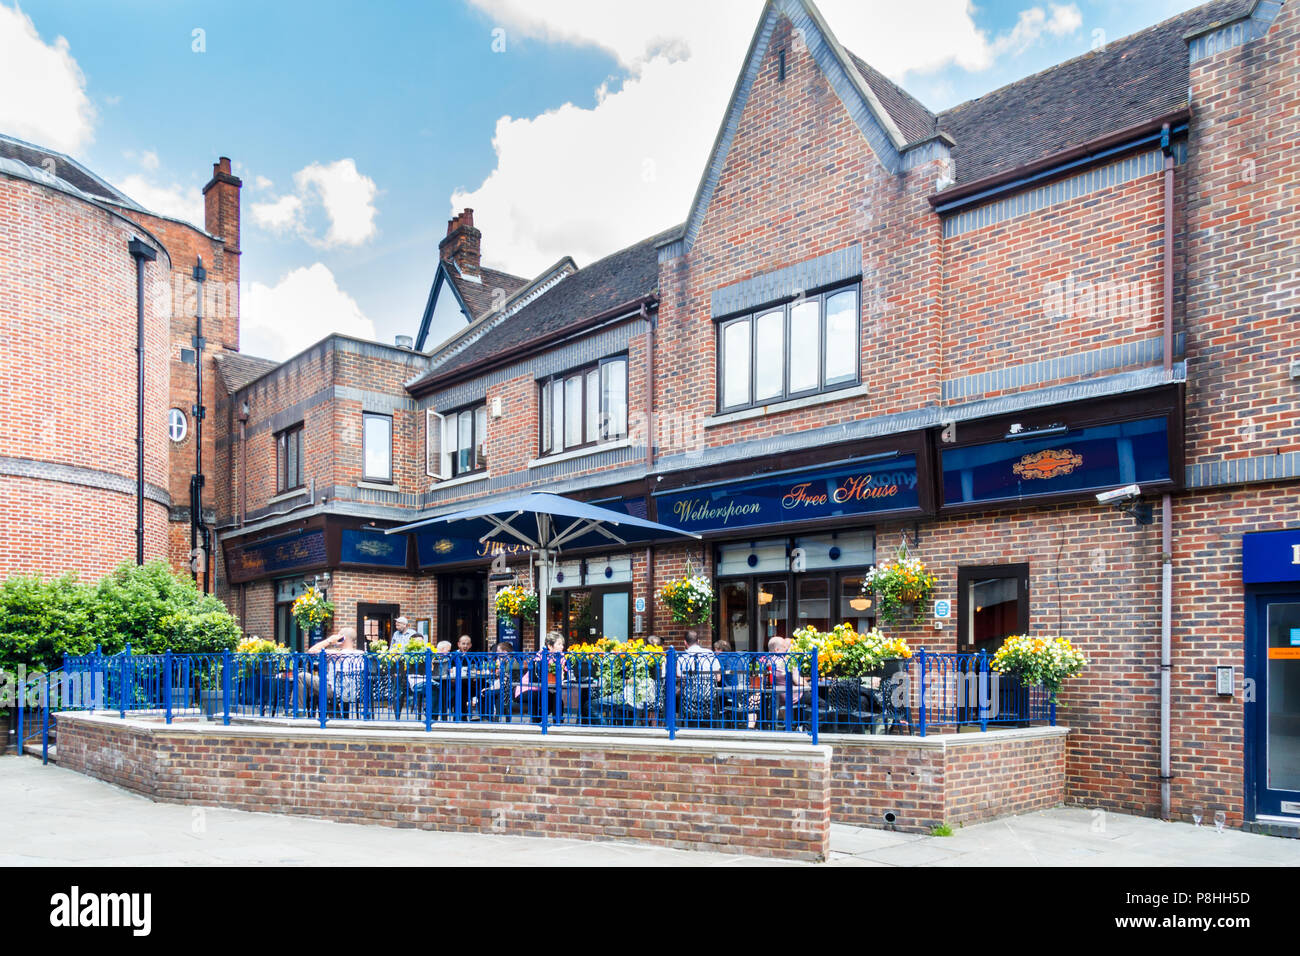 High Wycombe, UK - 3rd June 2018: Rear entrance of the Falcon pub. The pub belongs to the Wetherspoon chain. - Stock Image